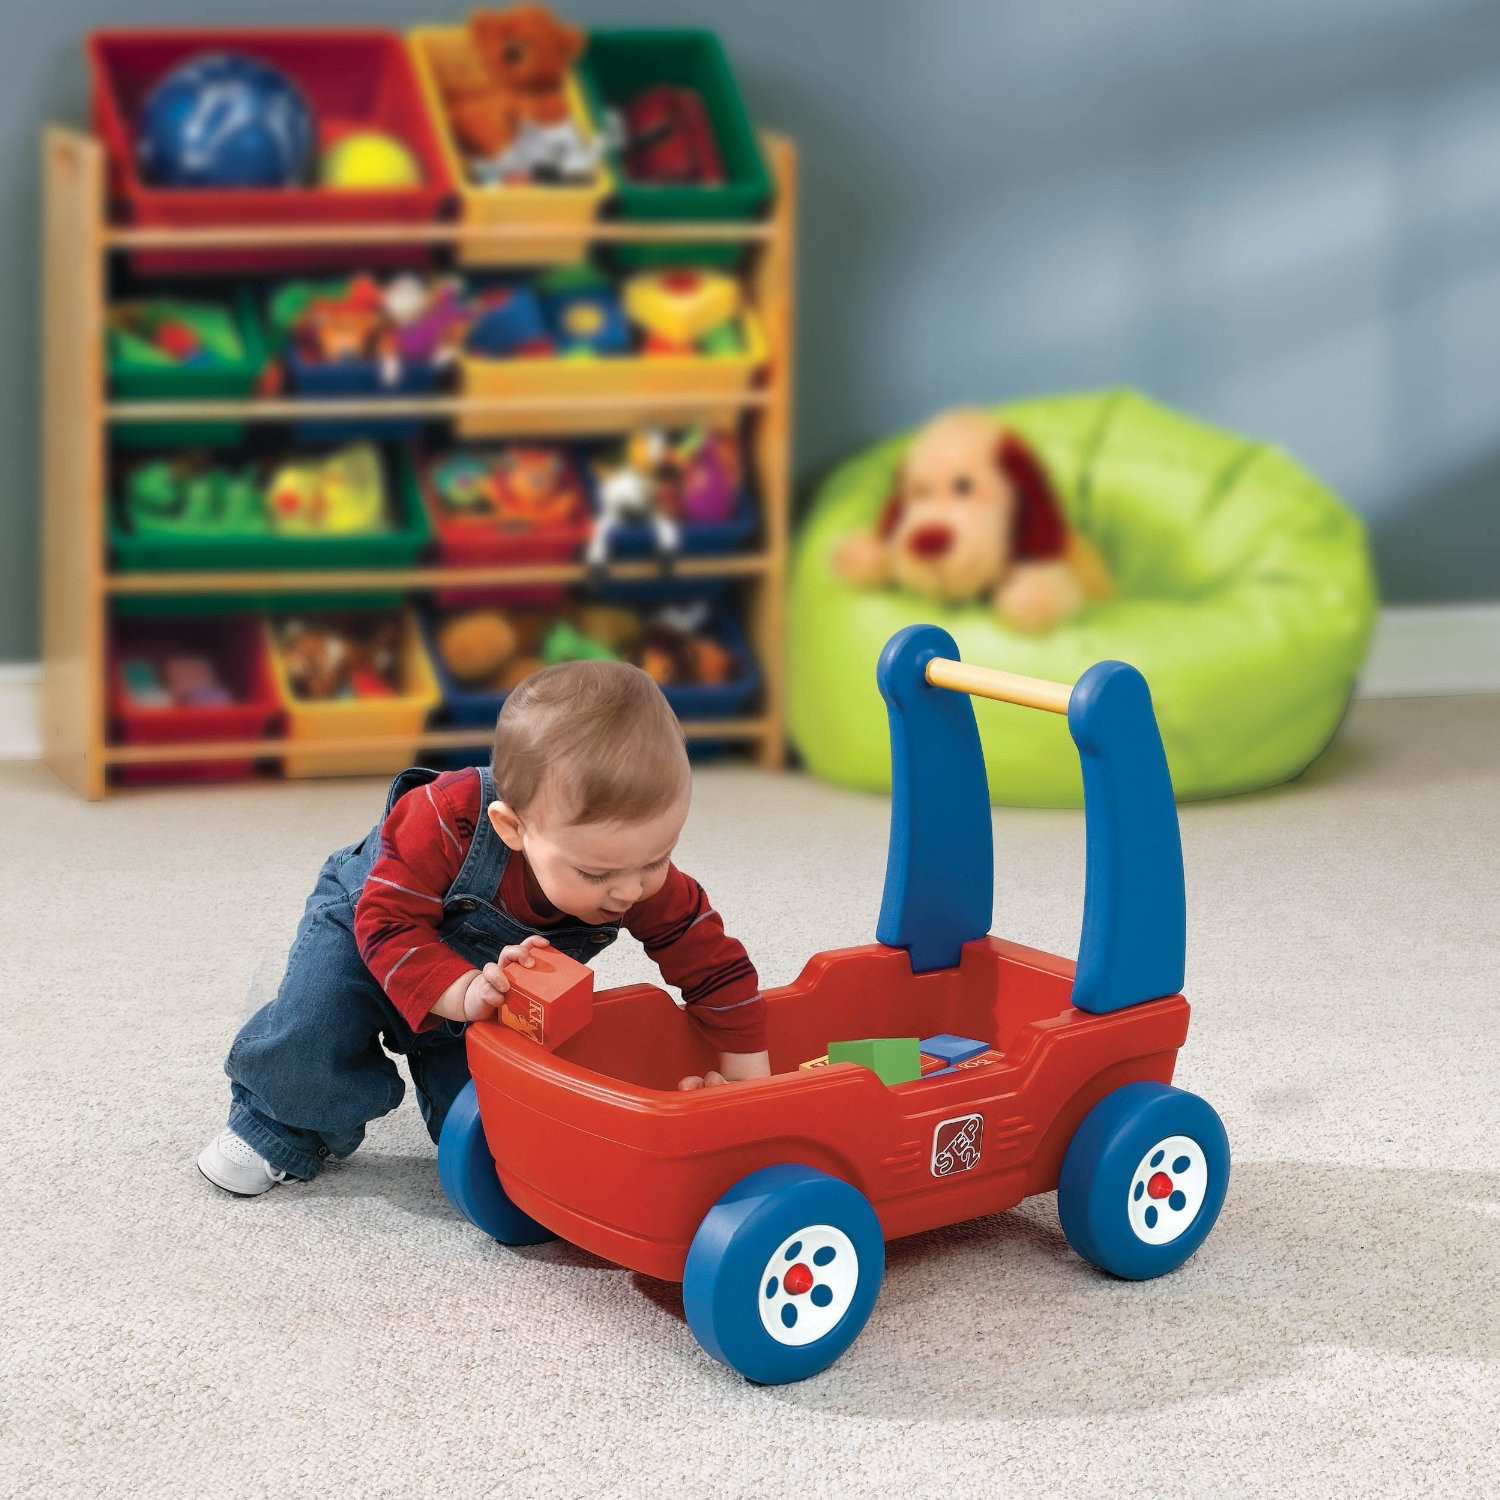 Baby Birthday Gift Ideas  Best Gifts Ideas for e Year Old Boys First Christmas